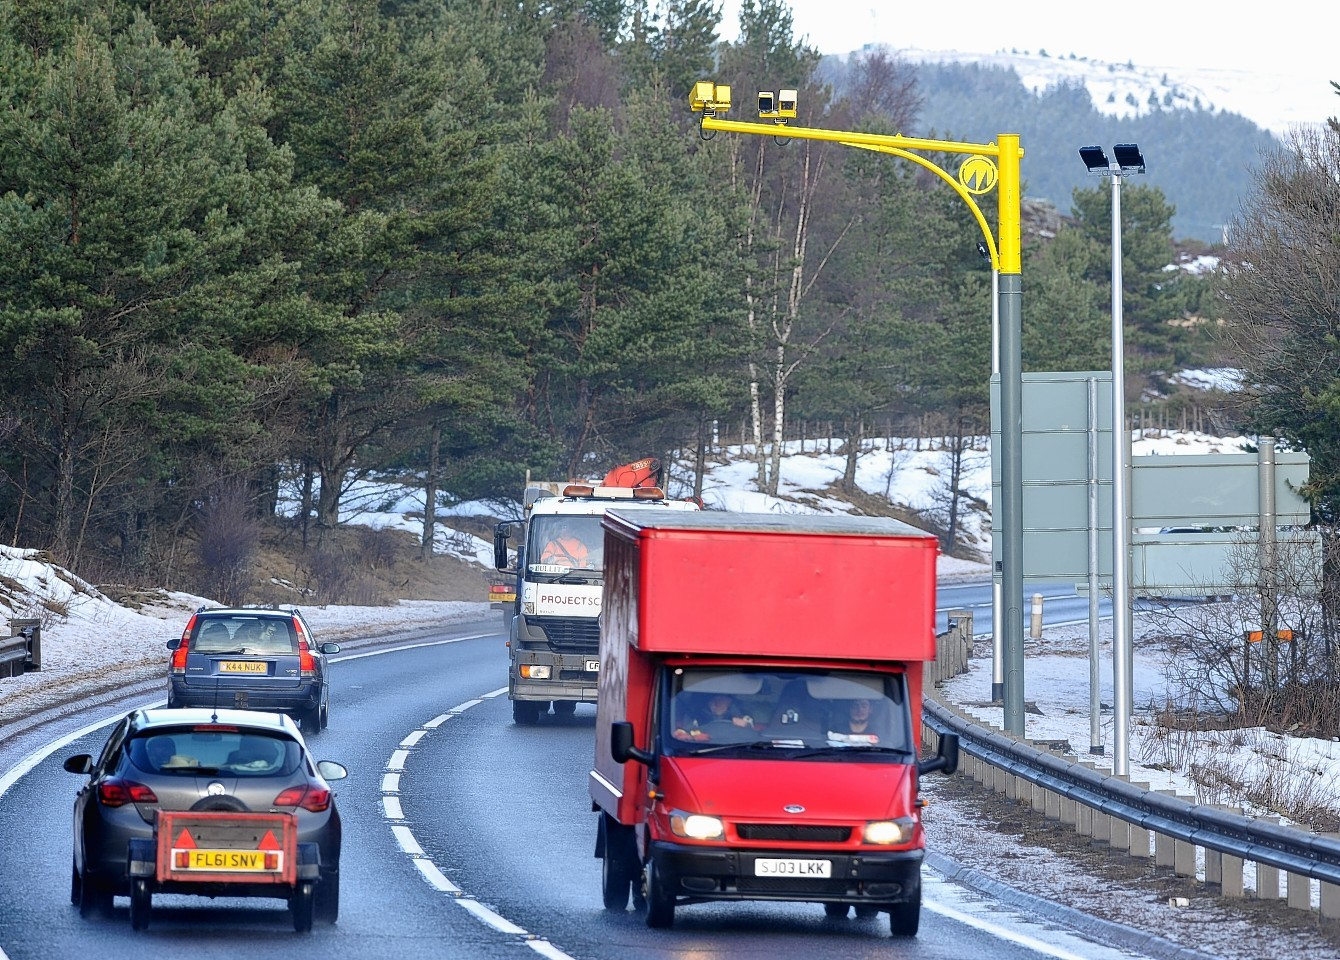 A9 average speed cameras